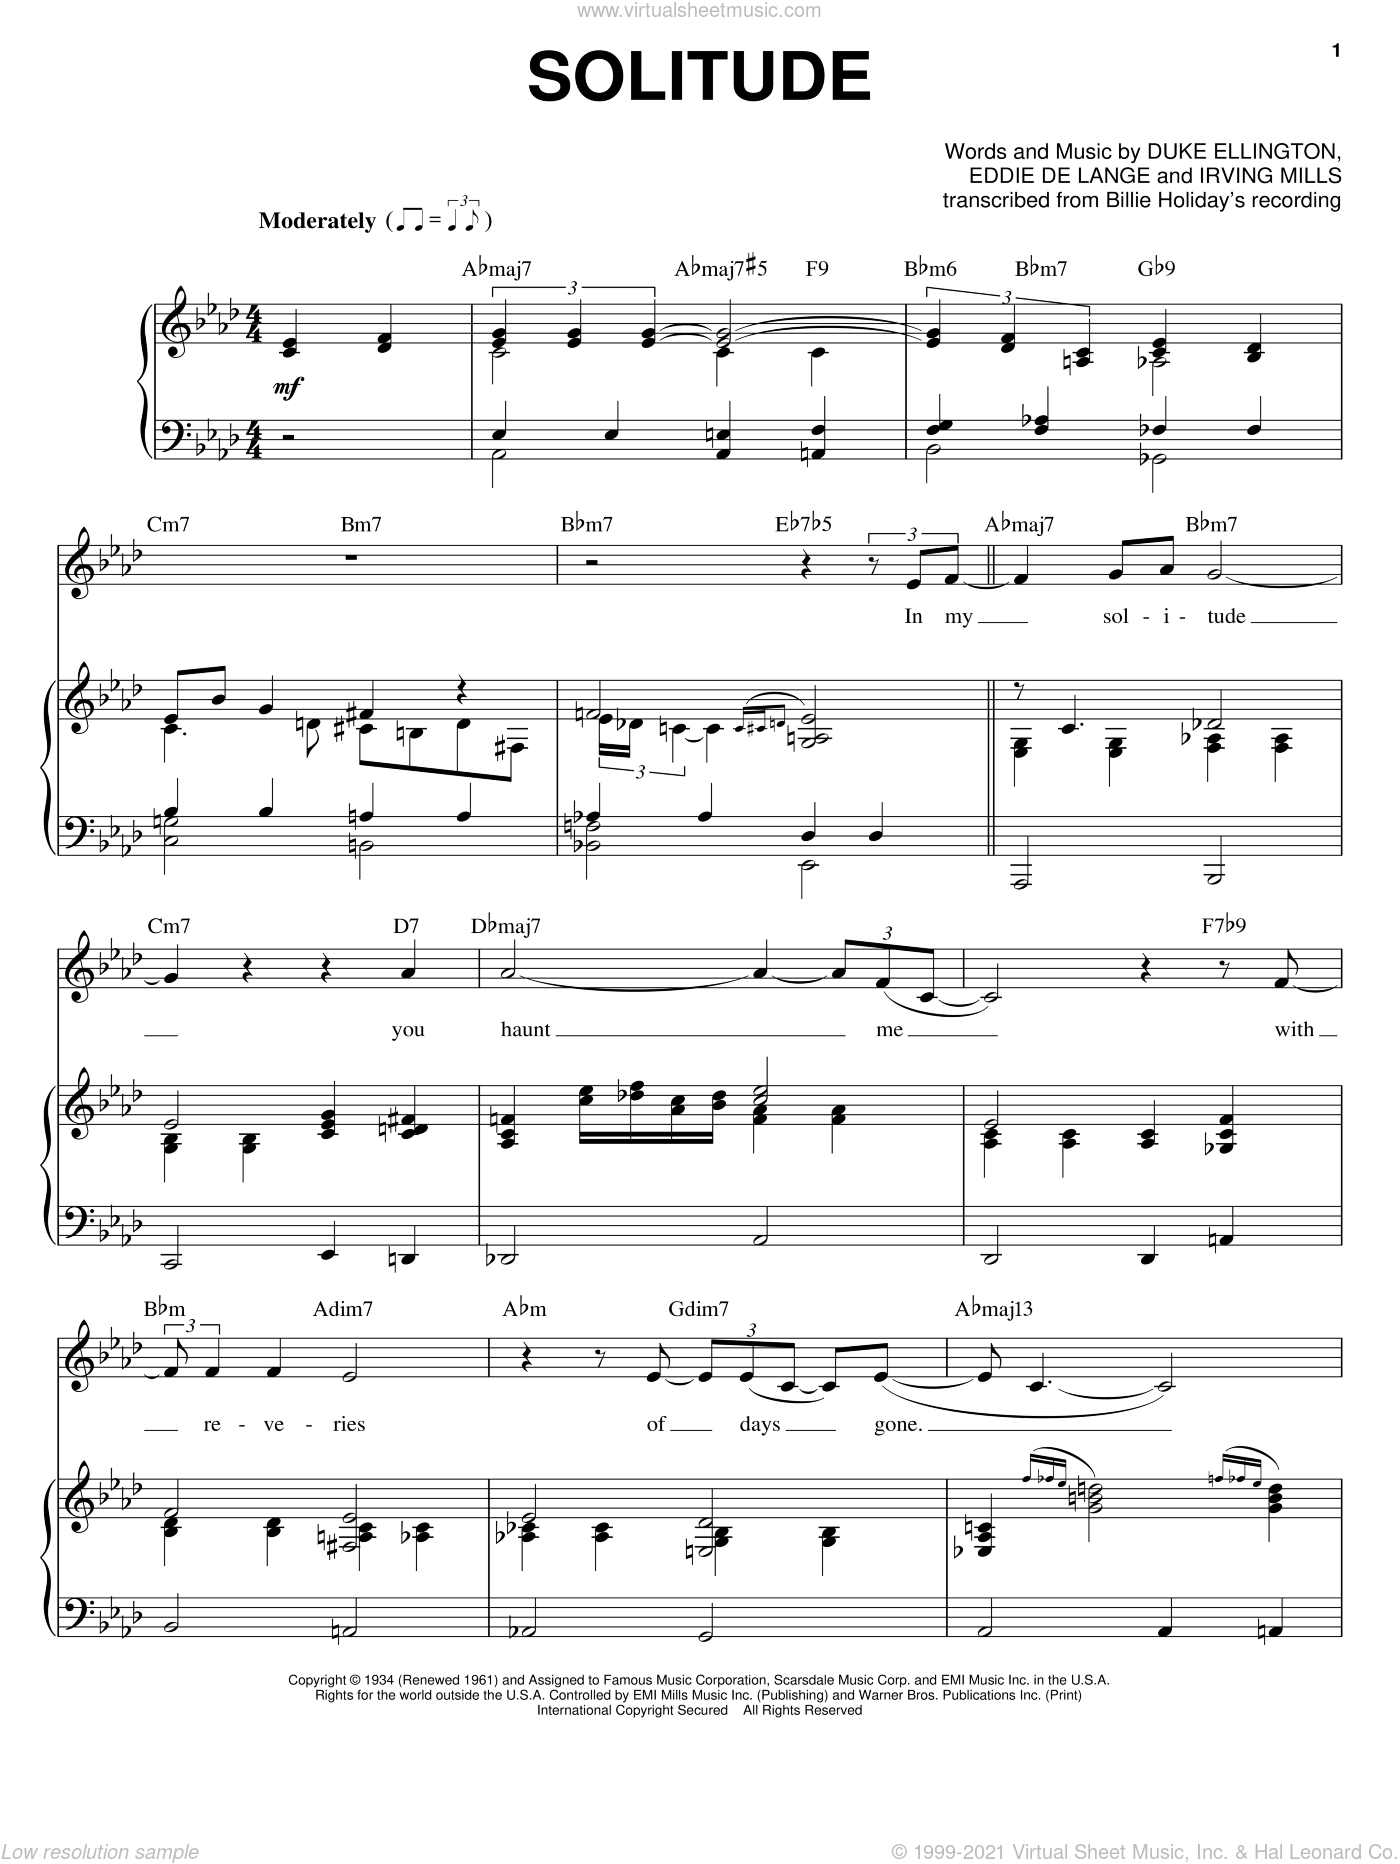 Solitude sheet music for voice and piano by Irving Mills, Billie Holiday, Duke Ellington and Eddie DeLange. Score Image Preview.